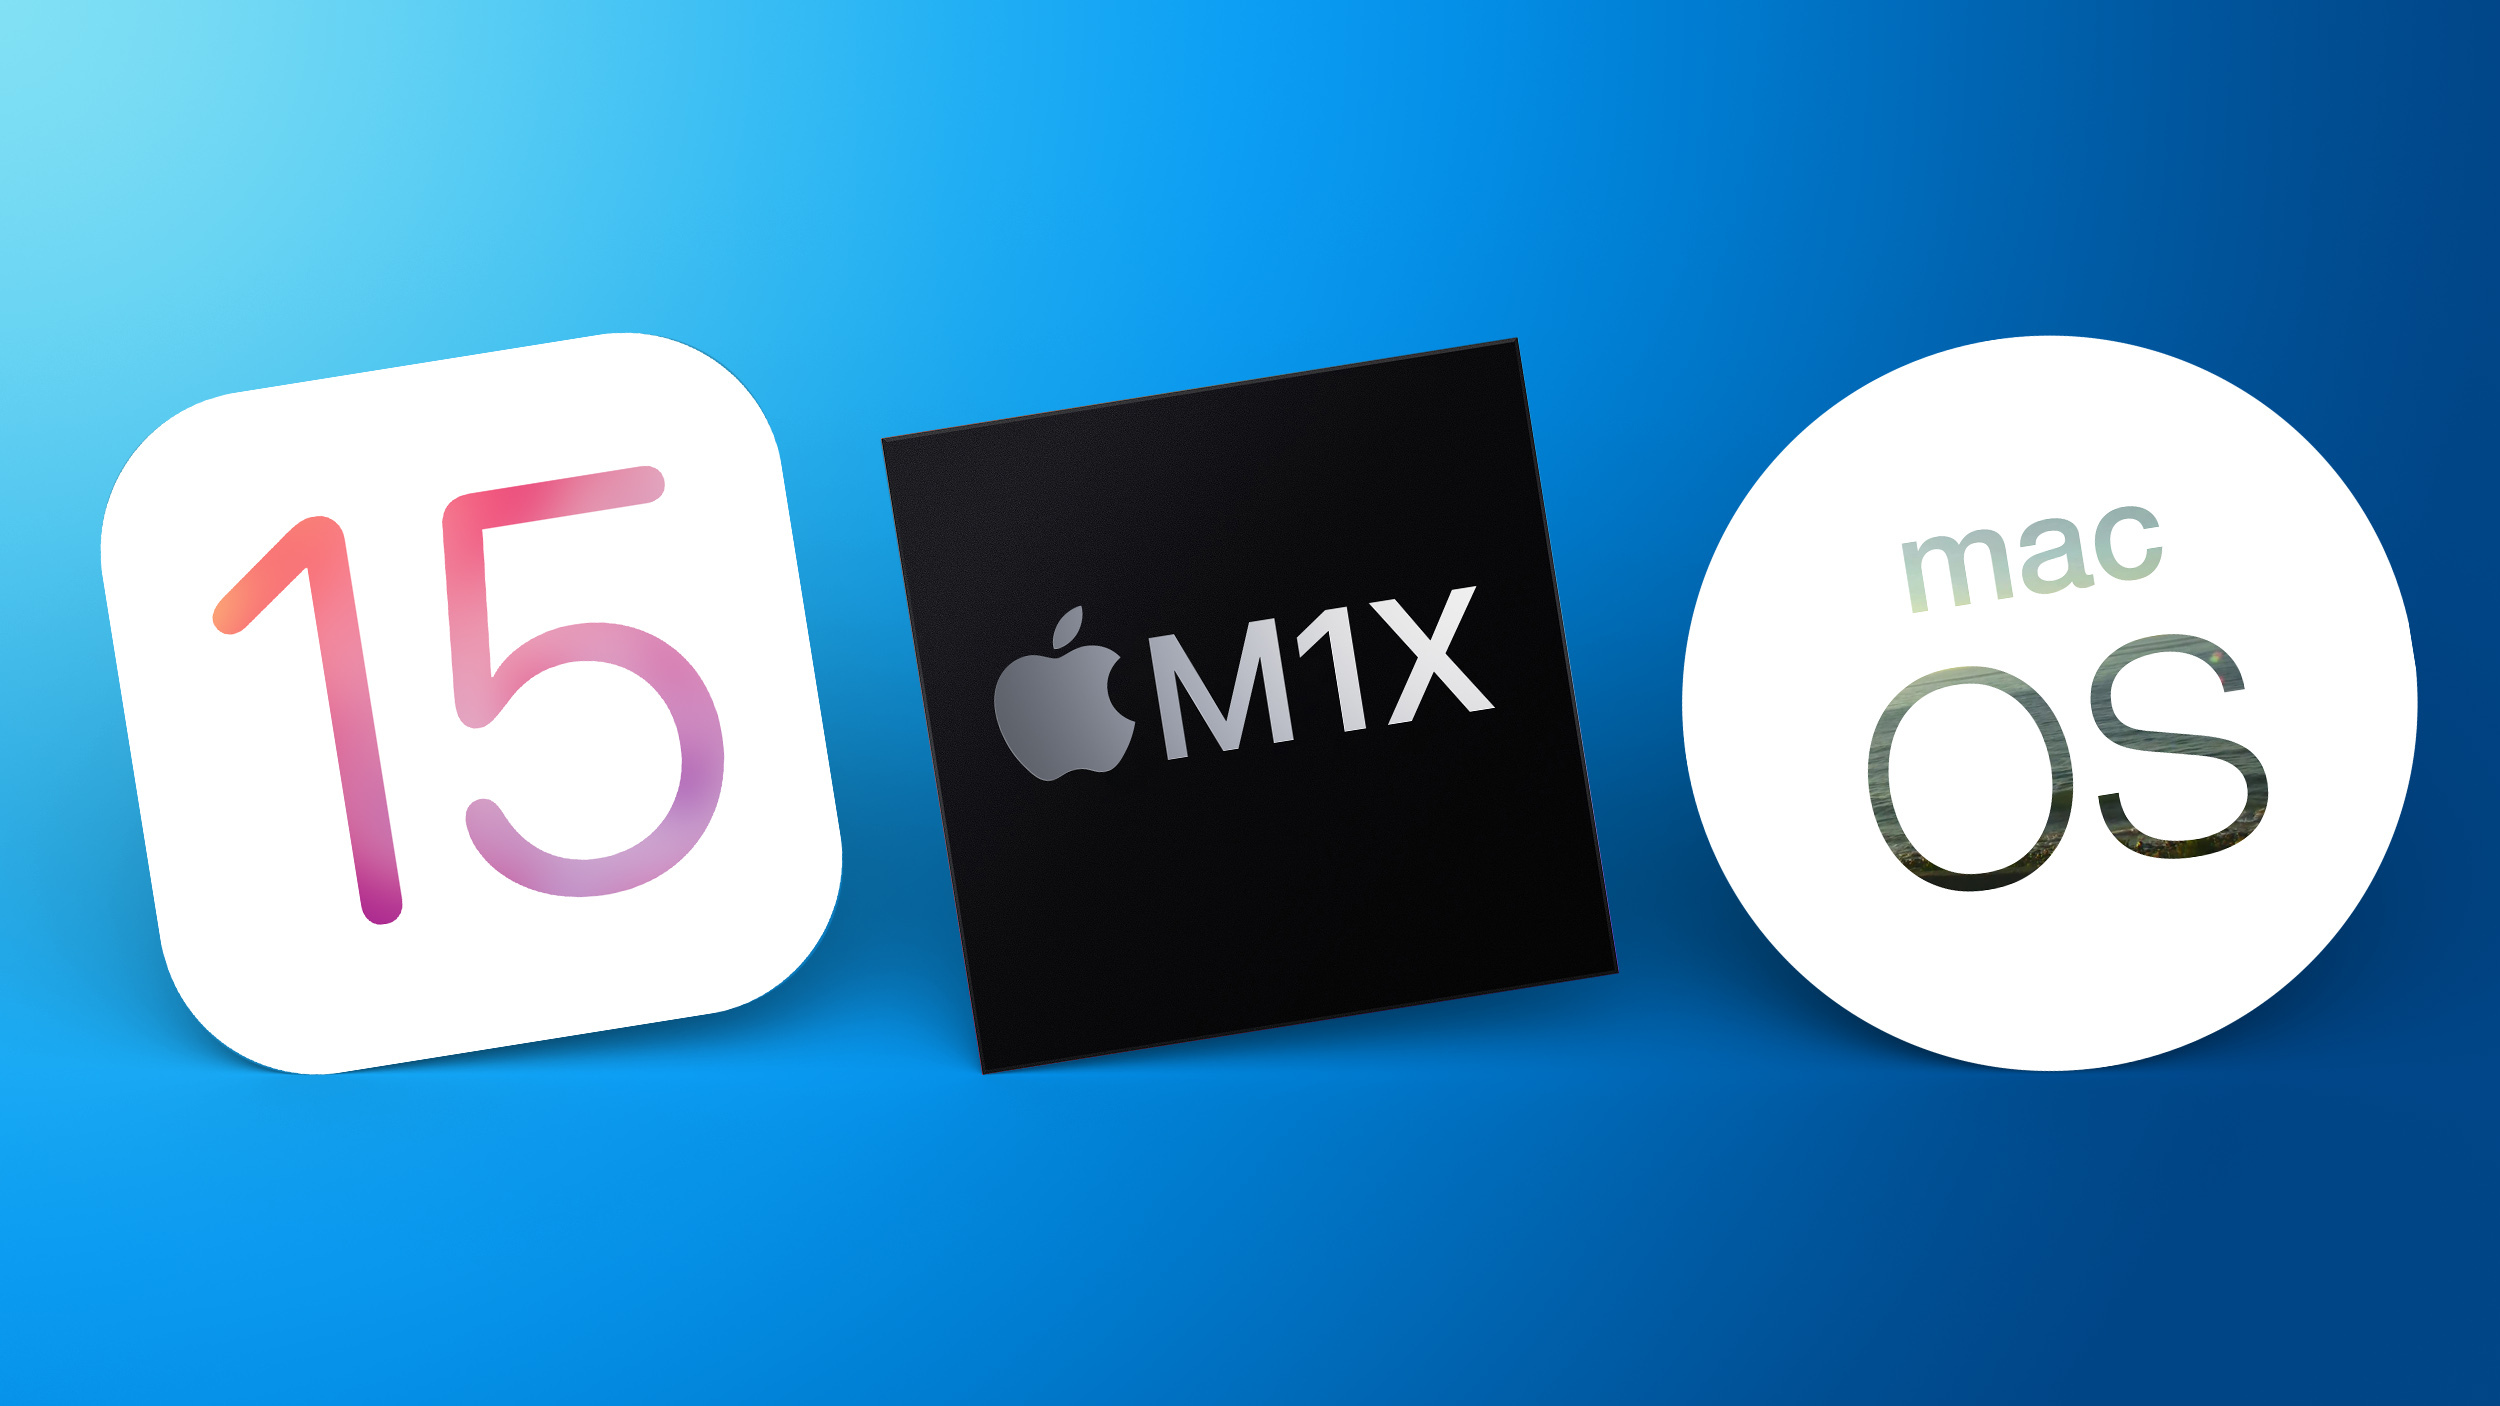 wwdc 21 placeholder icons